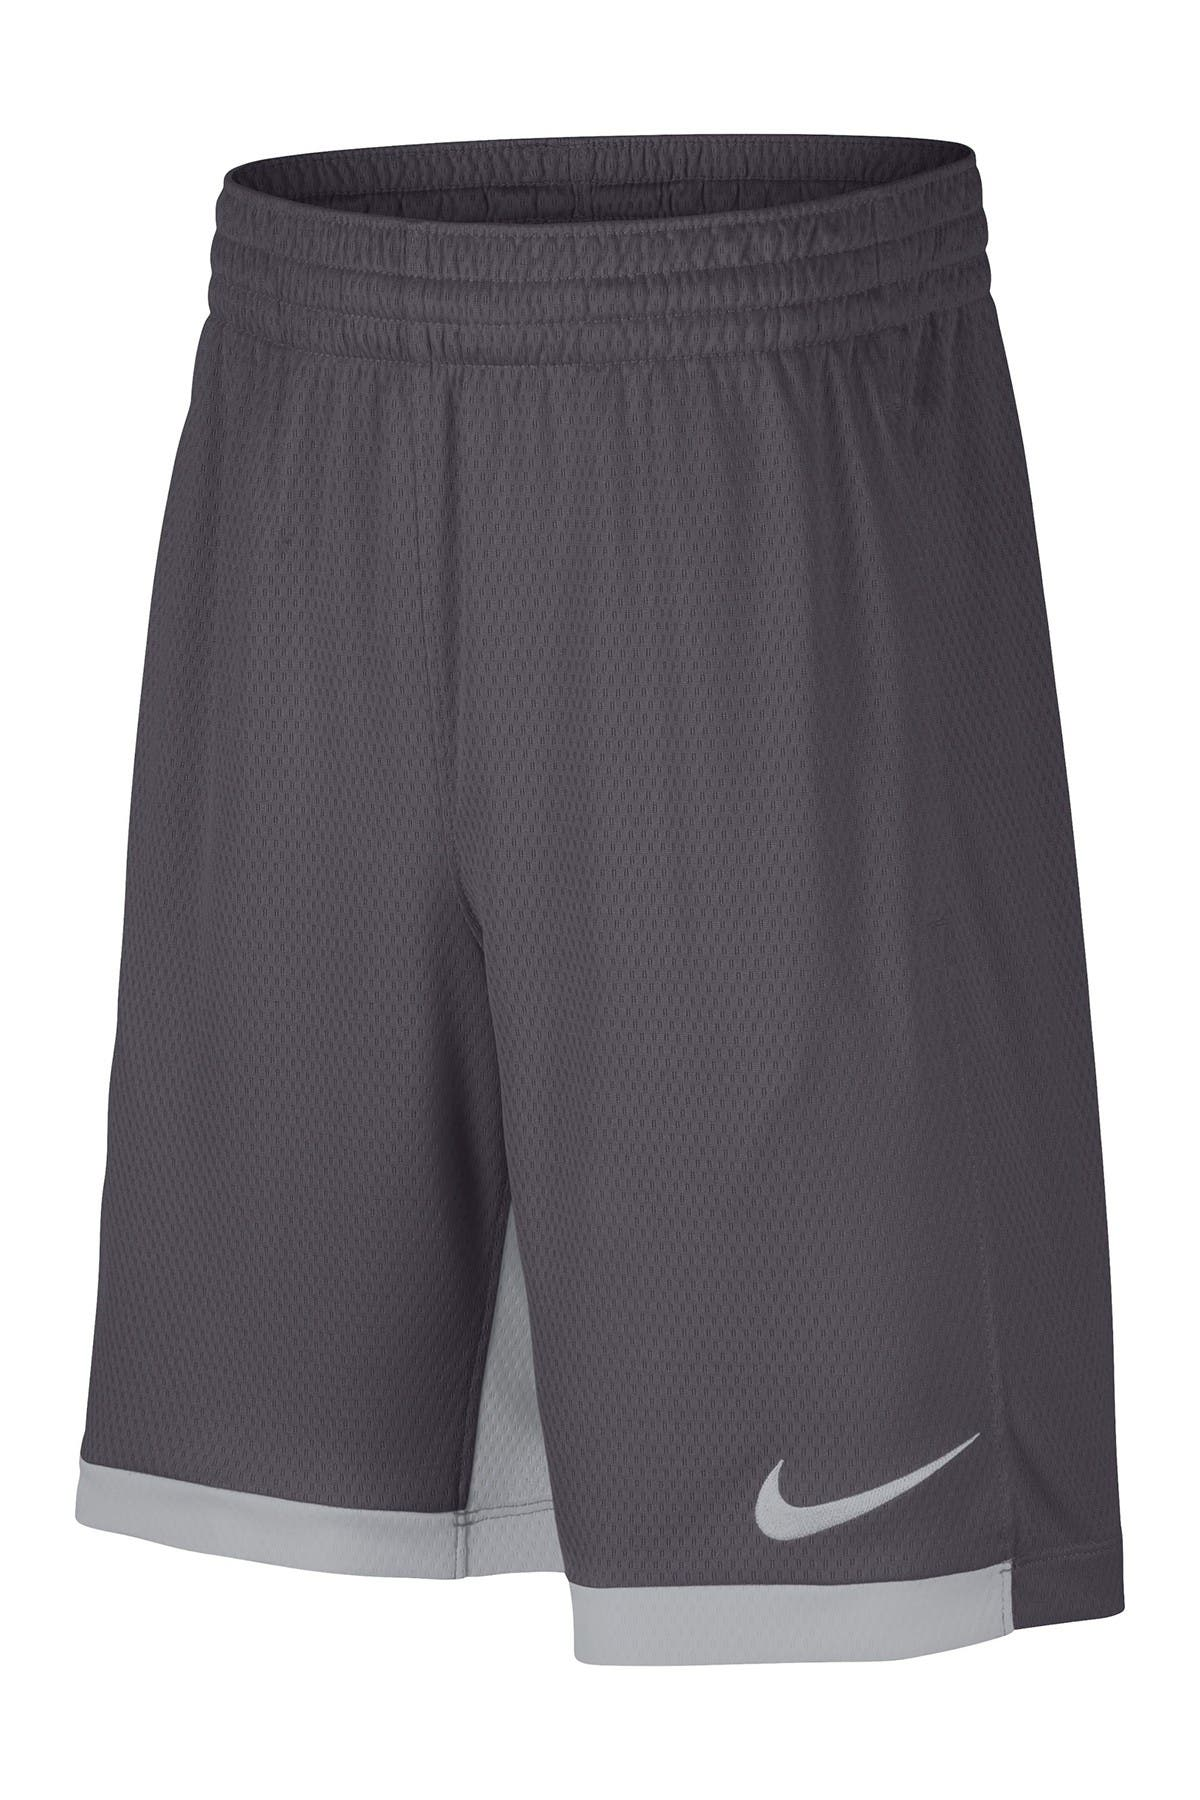 Image of Nike Dri-FIT Trophy Training Shorts